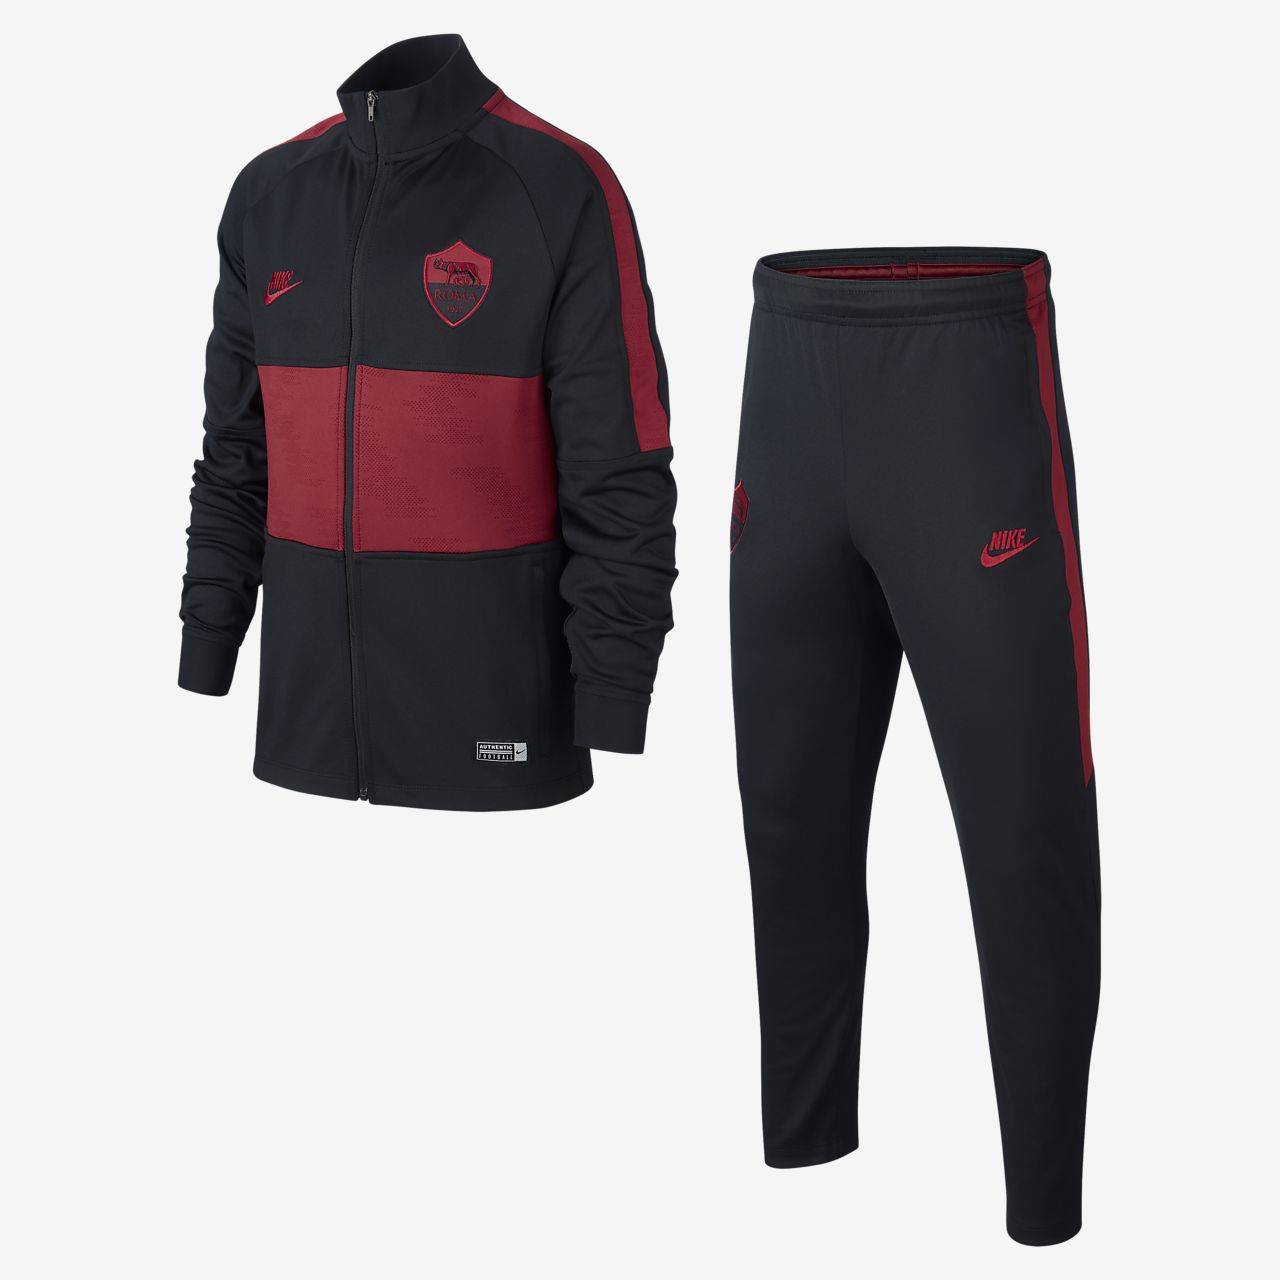 A.S. Roma Strike Older Kids' Football Tracksuit